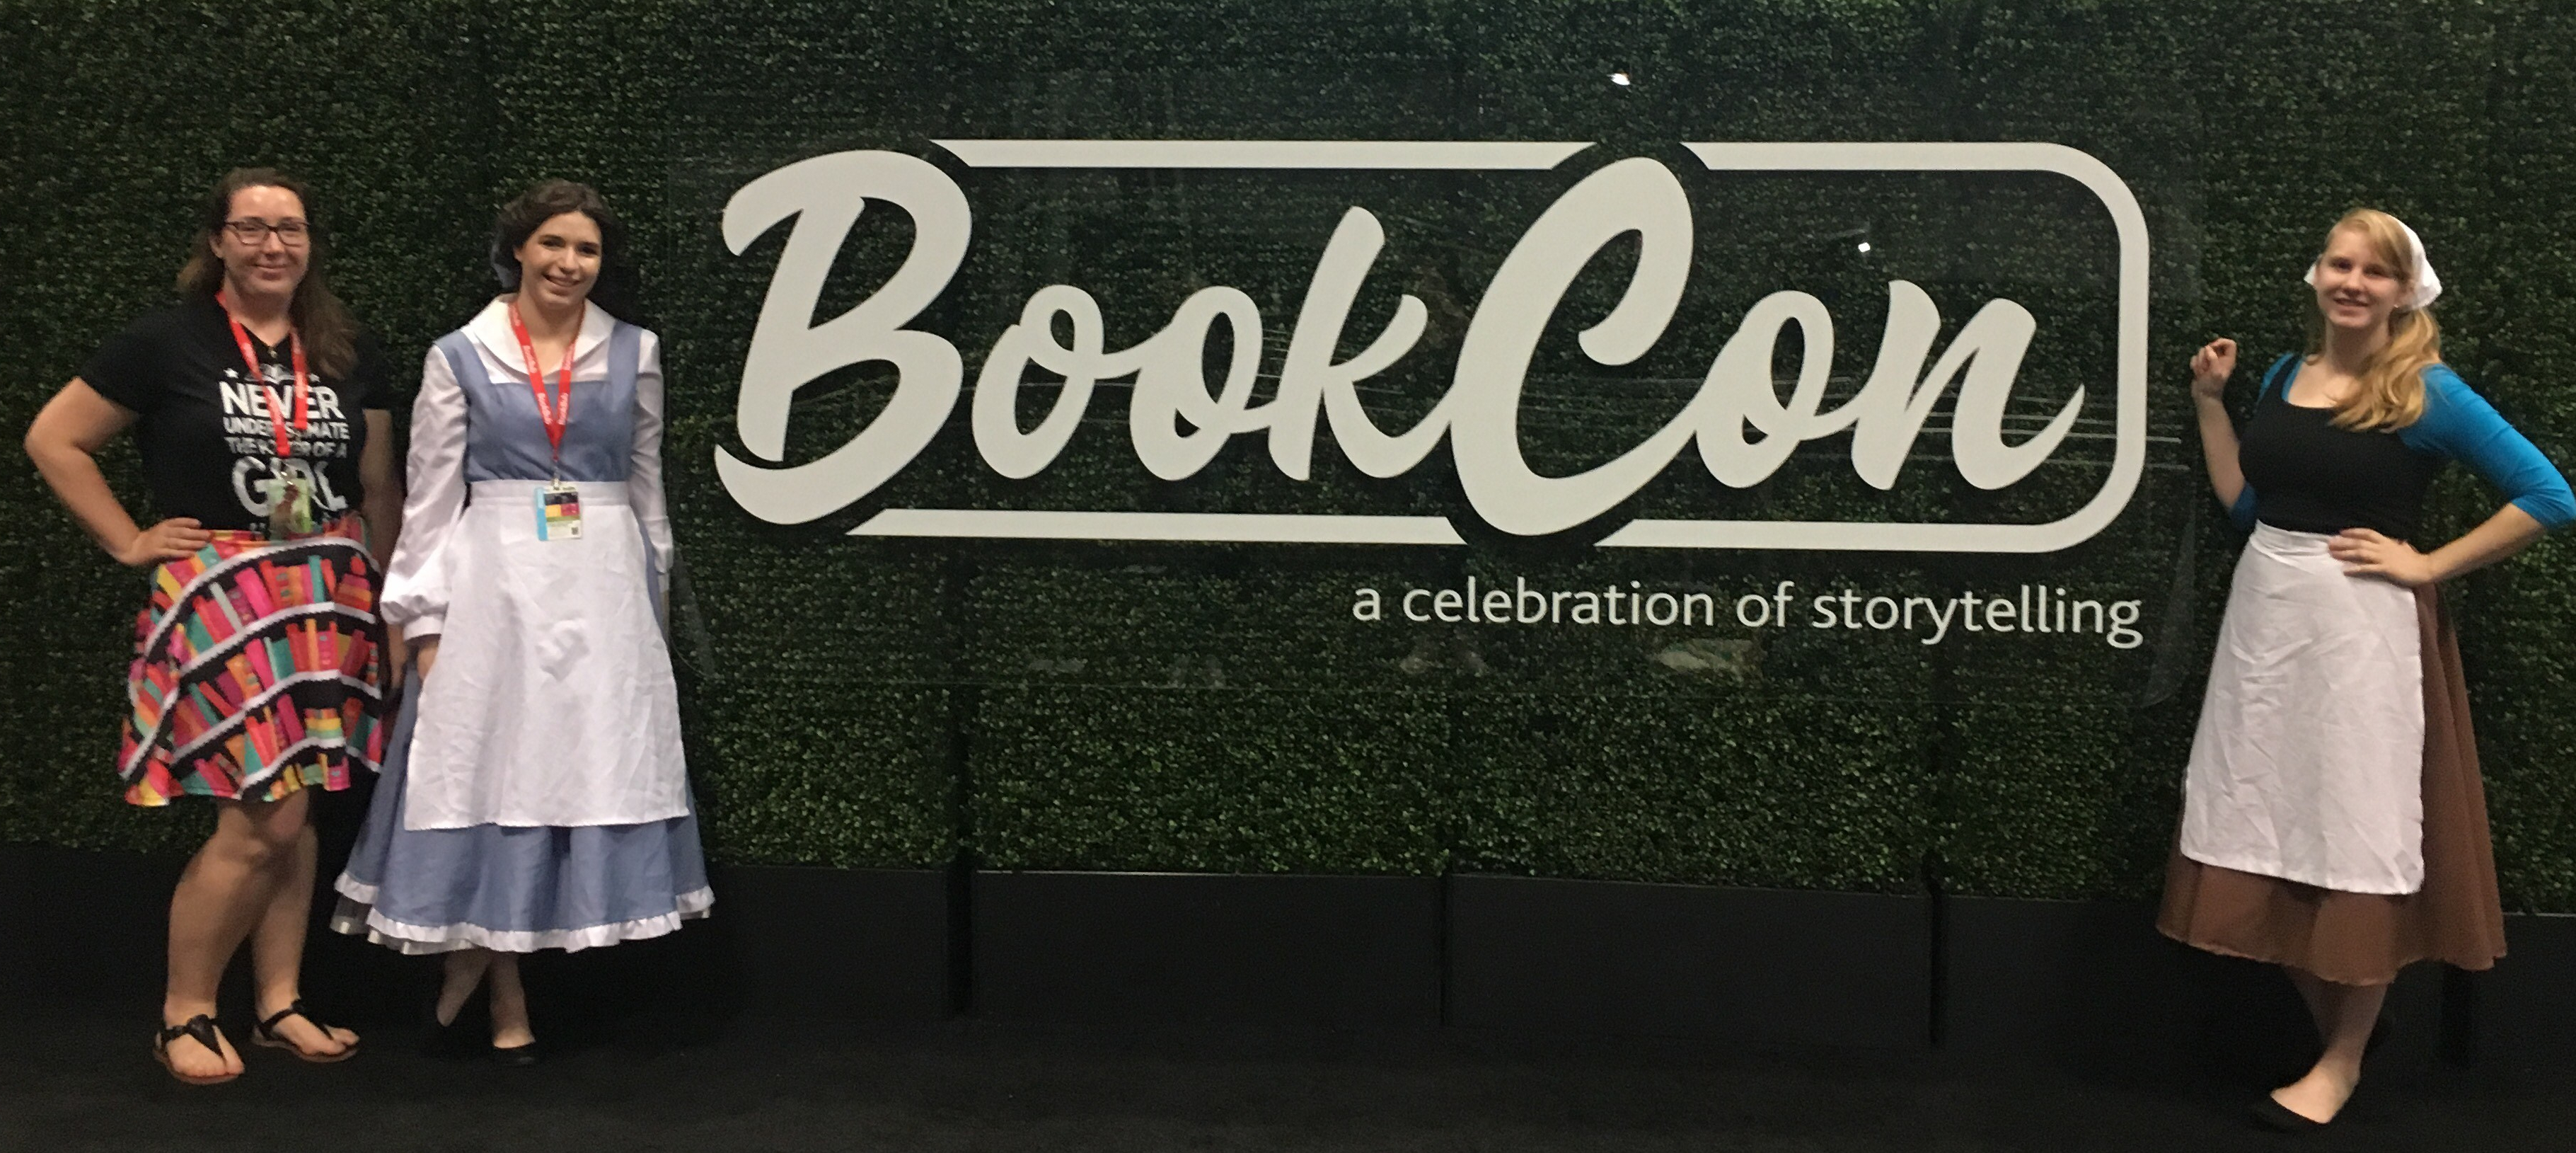 Belle and Cinderella cosplays posing in front of the BookCon sign